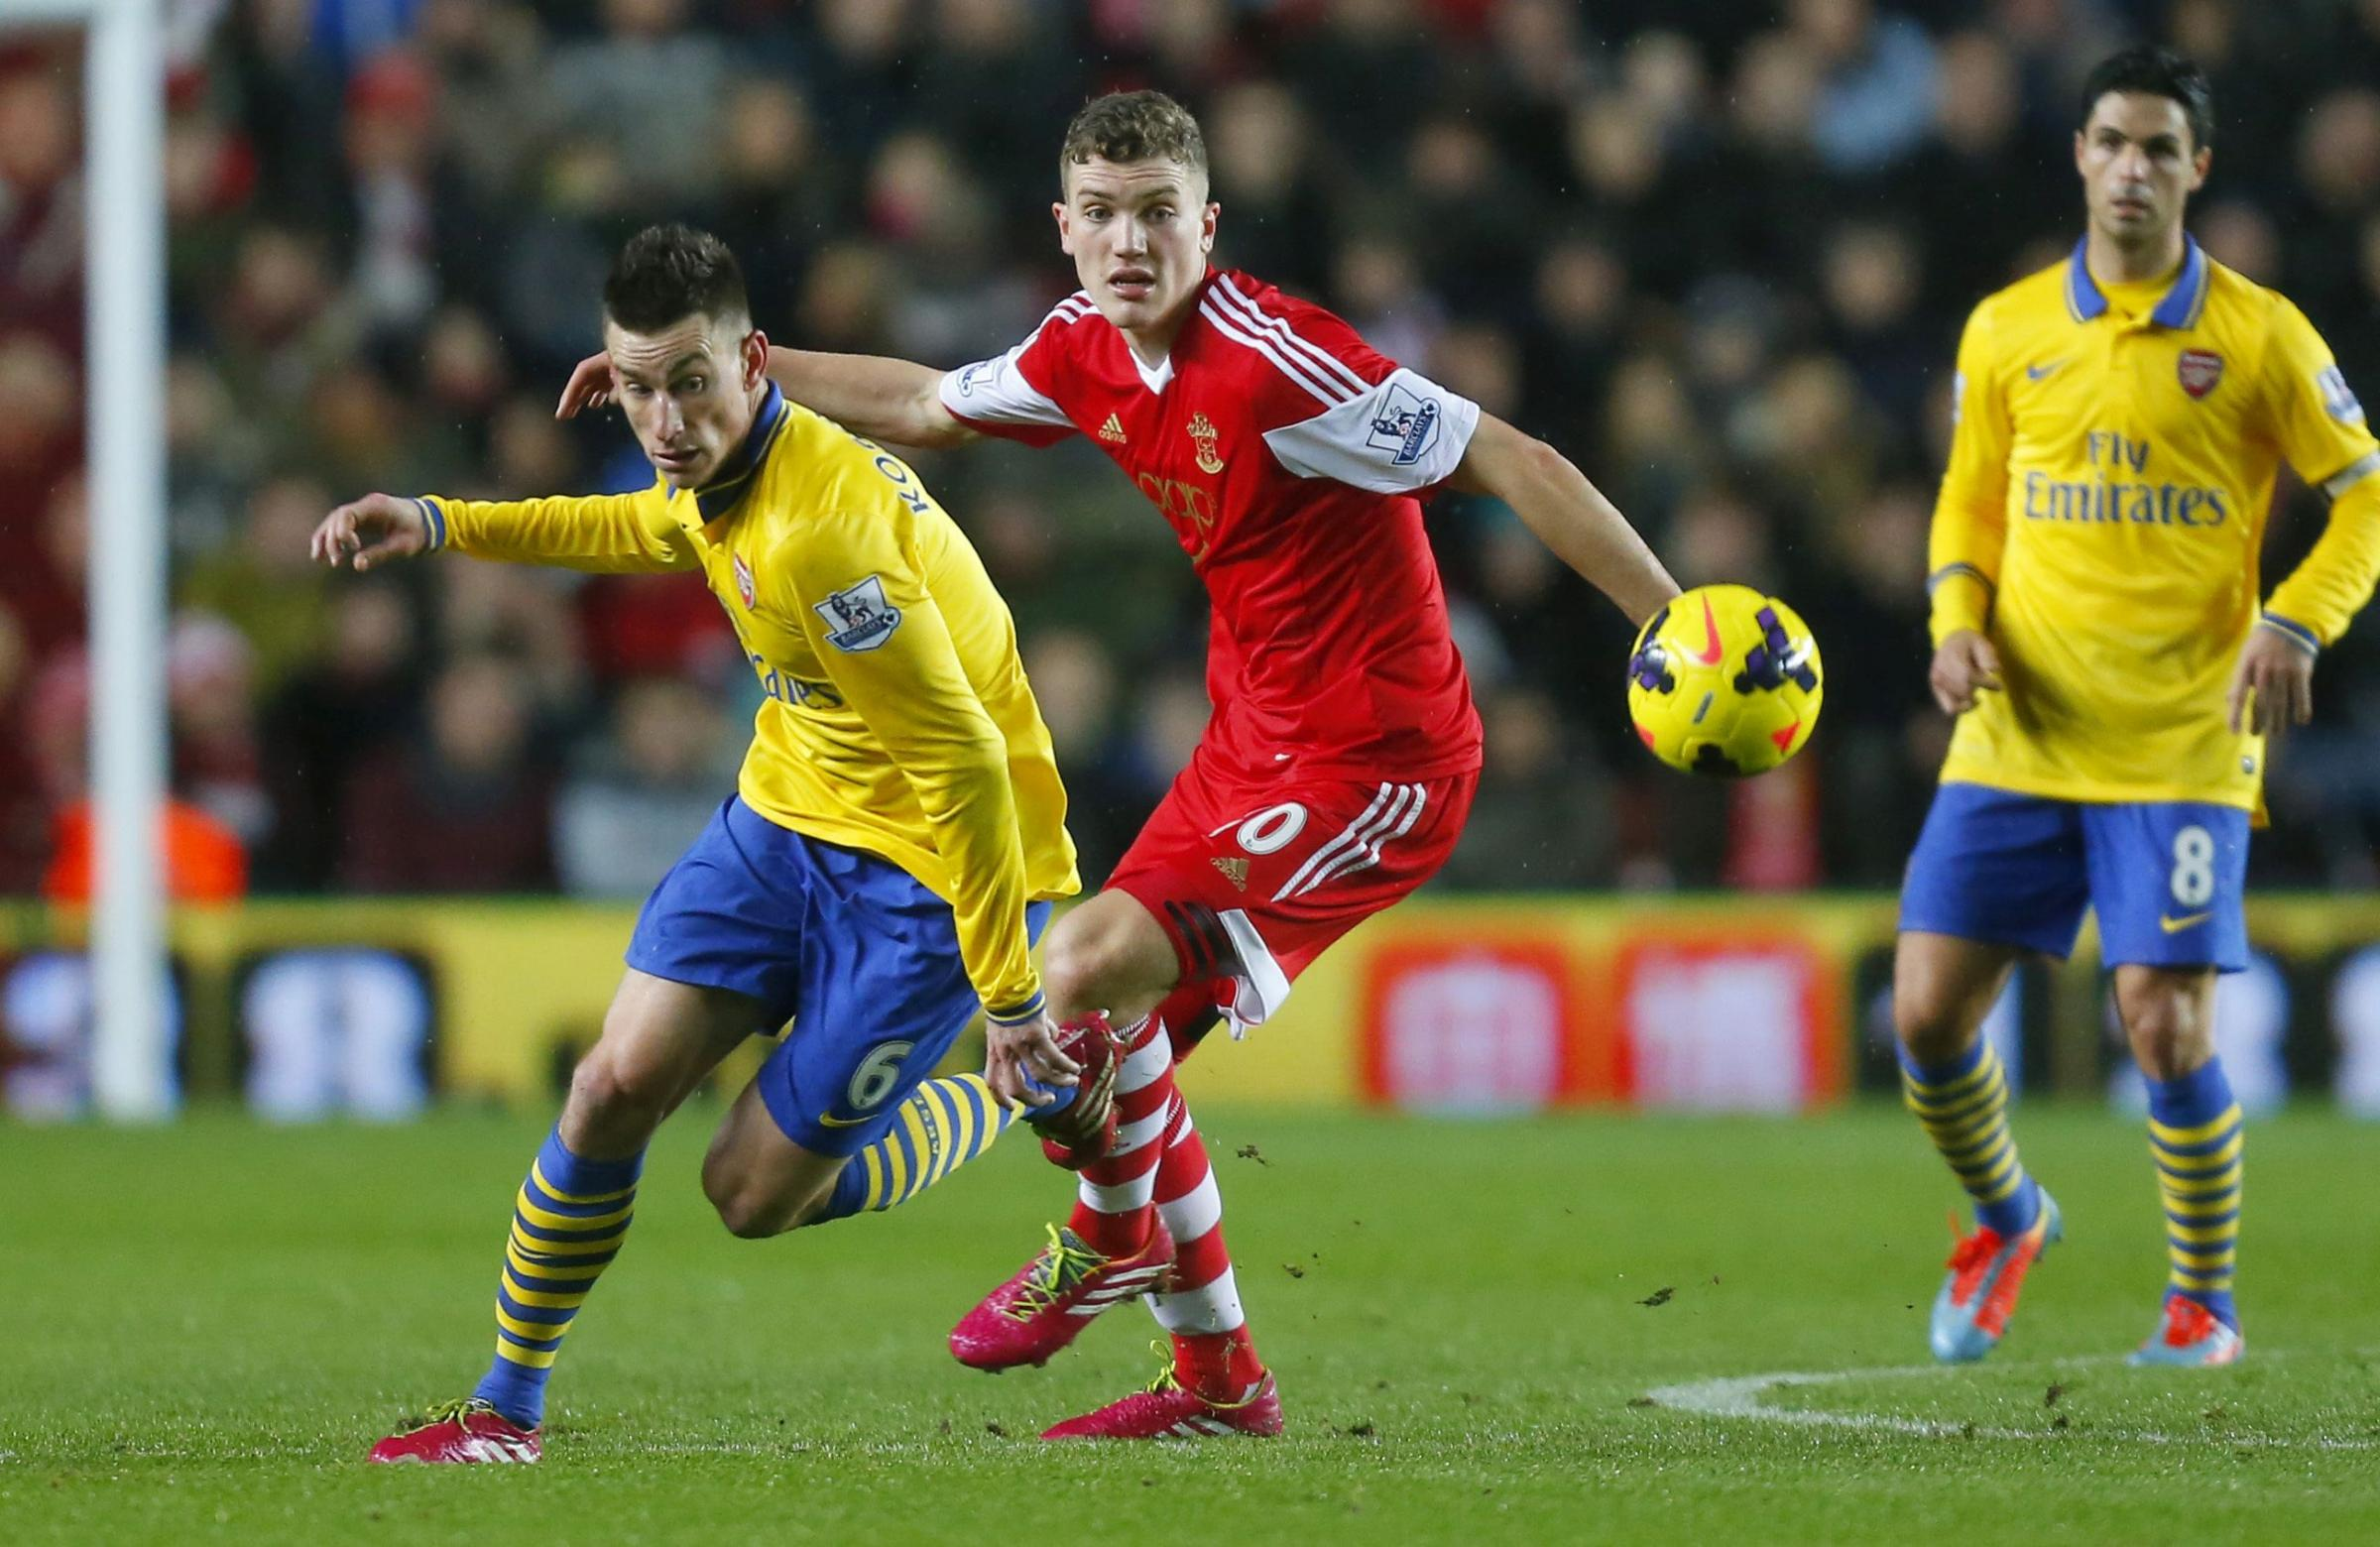 Sam Gallagher in action against Arsenal